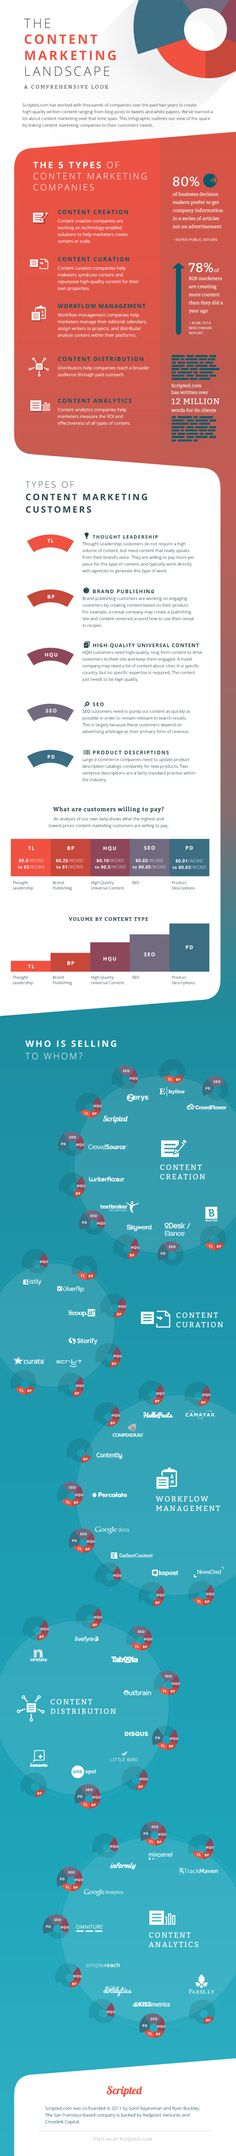 [Cool Infographic Friday] The Content Marketing Landscape - SocialFish